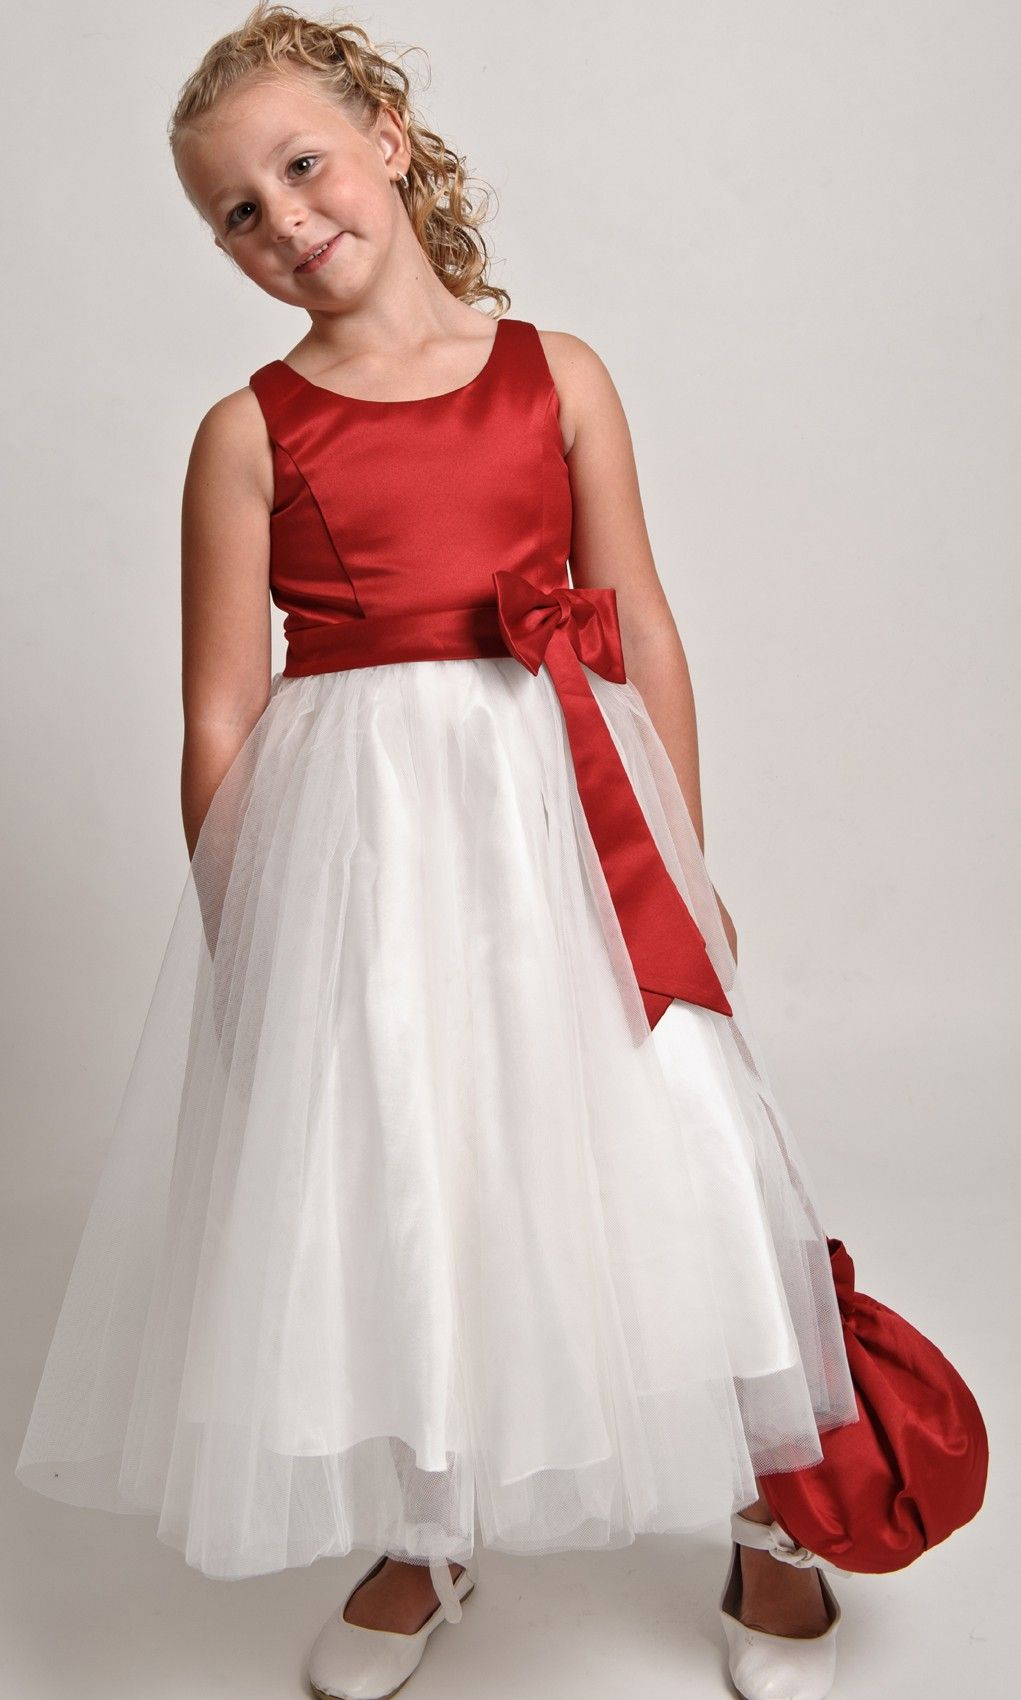 Childrens flower girl dresses best white dresses for Flower girls wedding dress